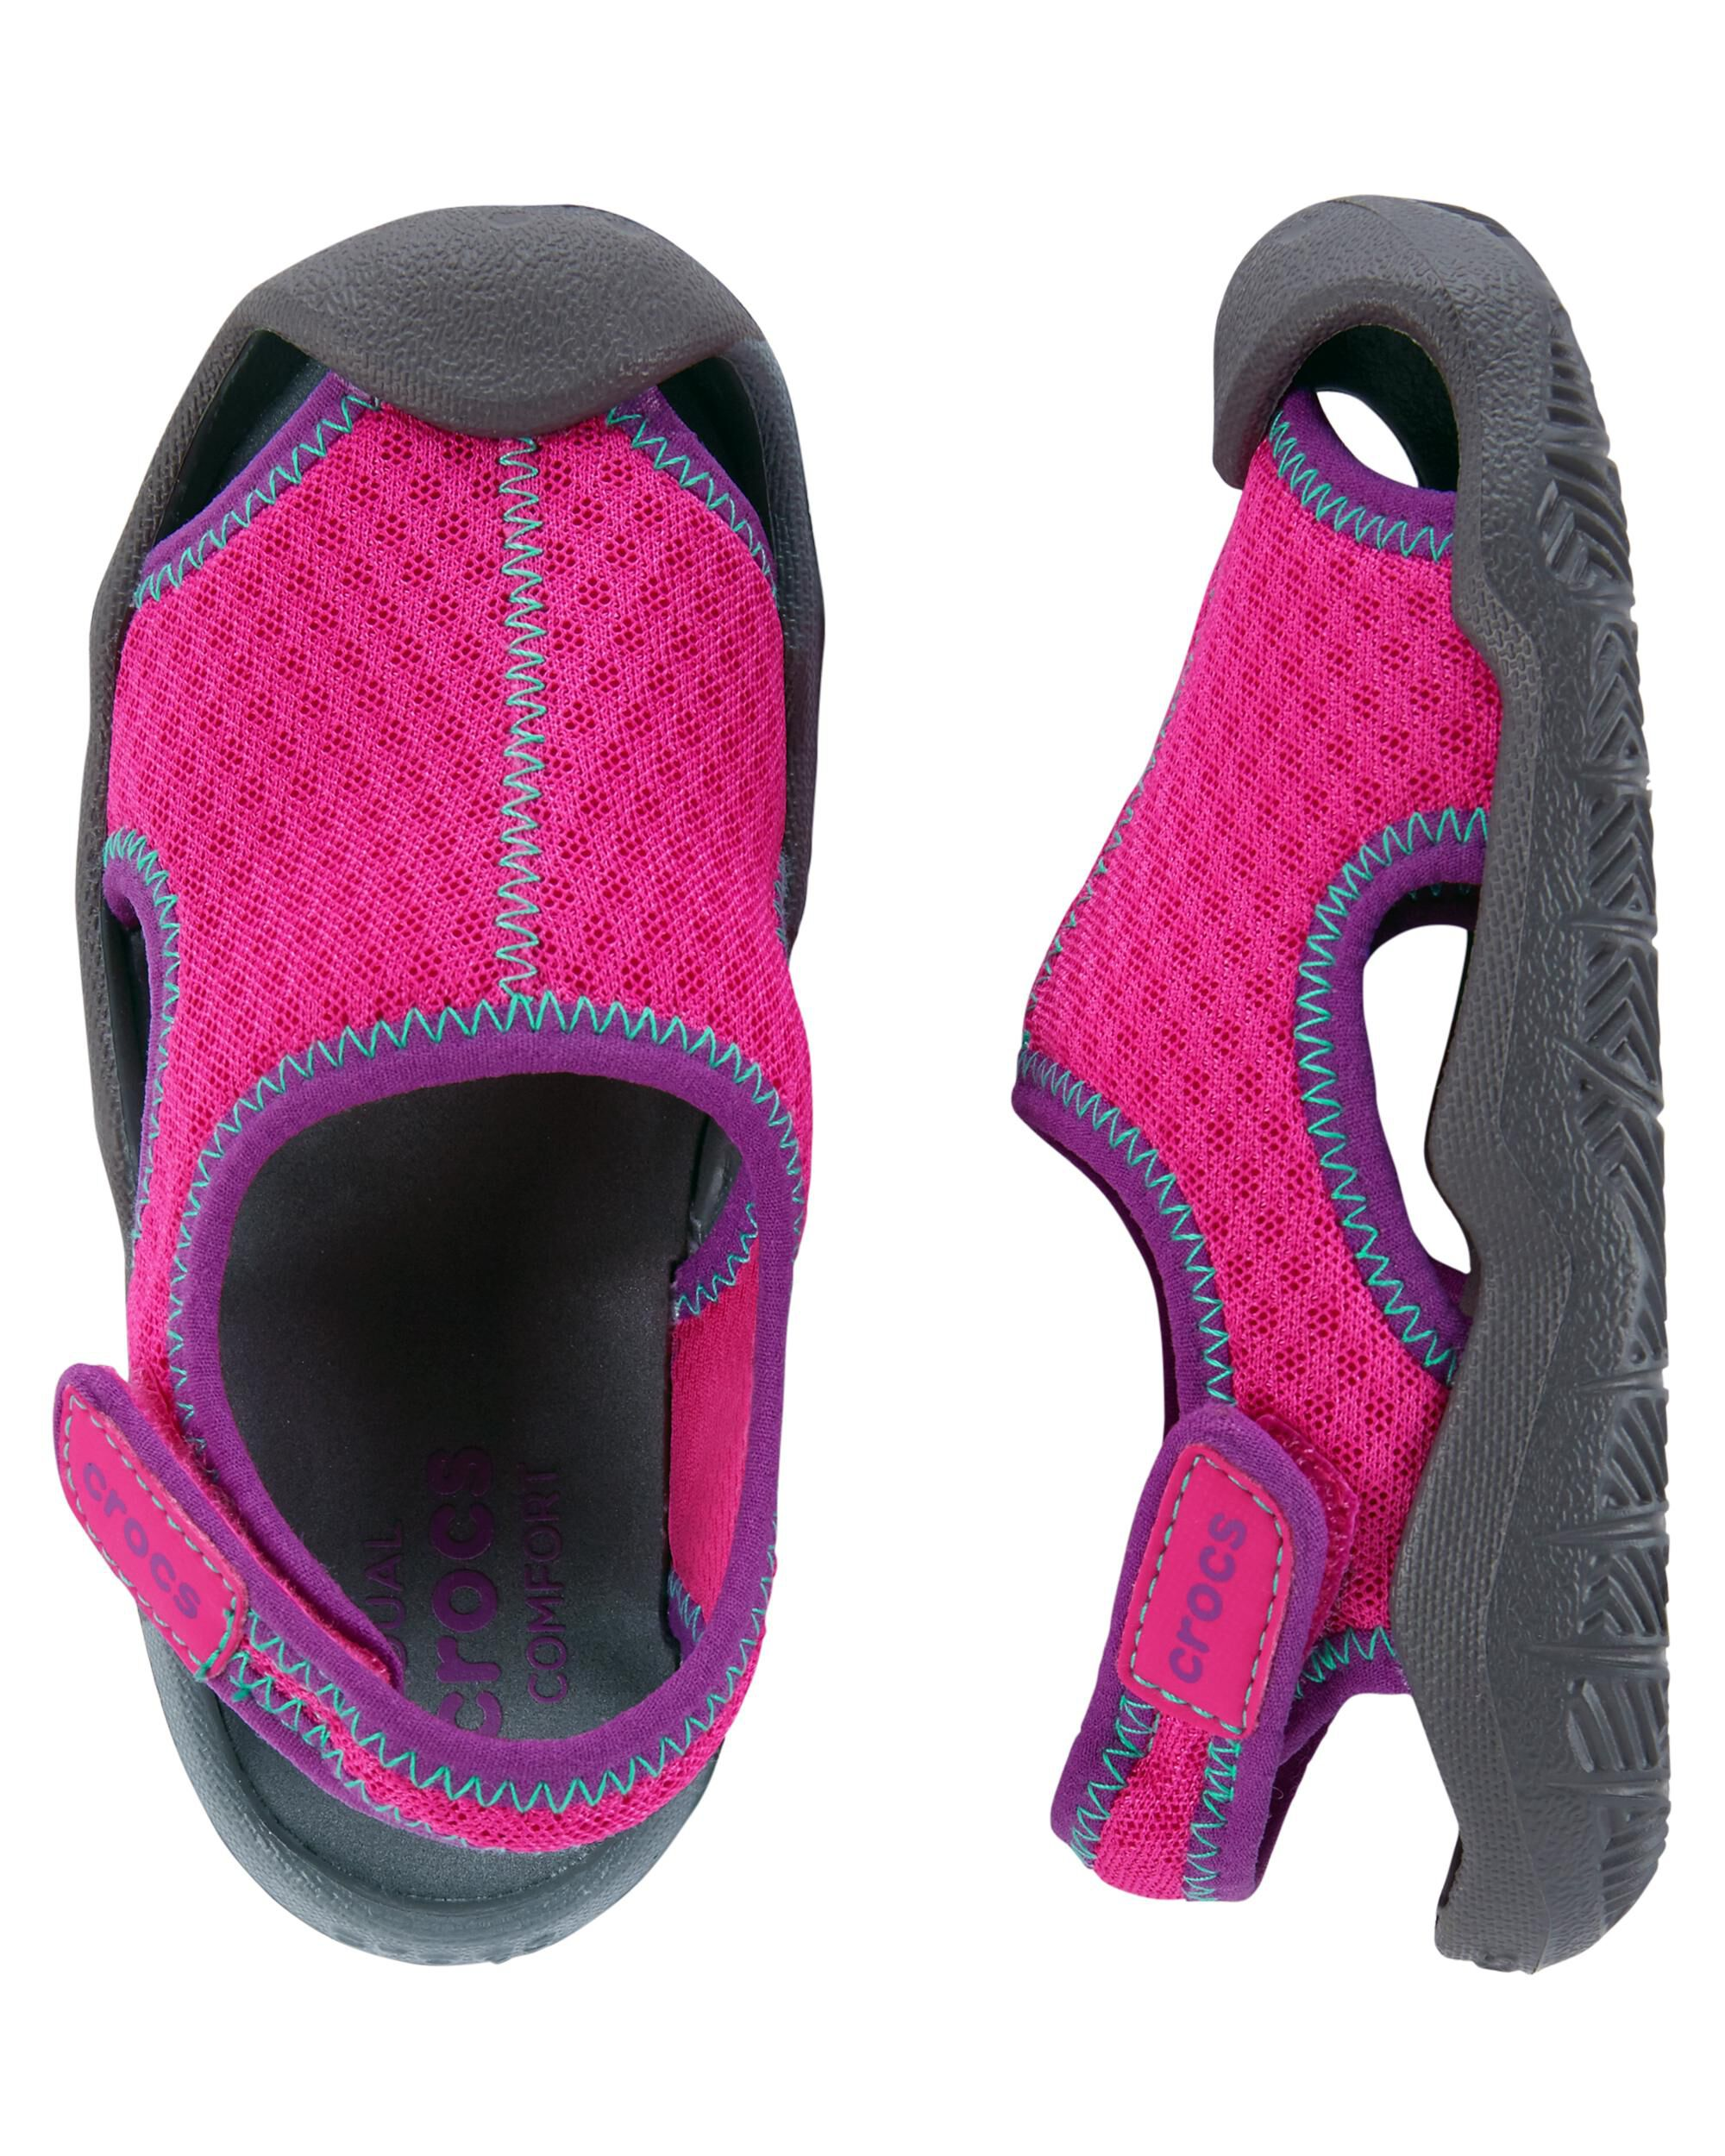 b9c57f0ea373 Crocs Swiftwater Sandal · Crocs Swiftwater Sandal ...